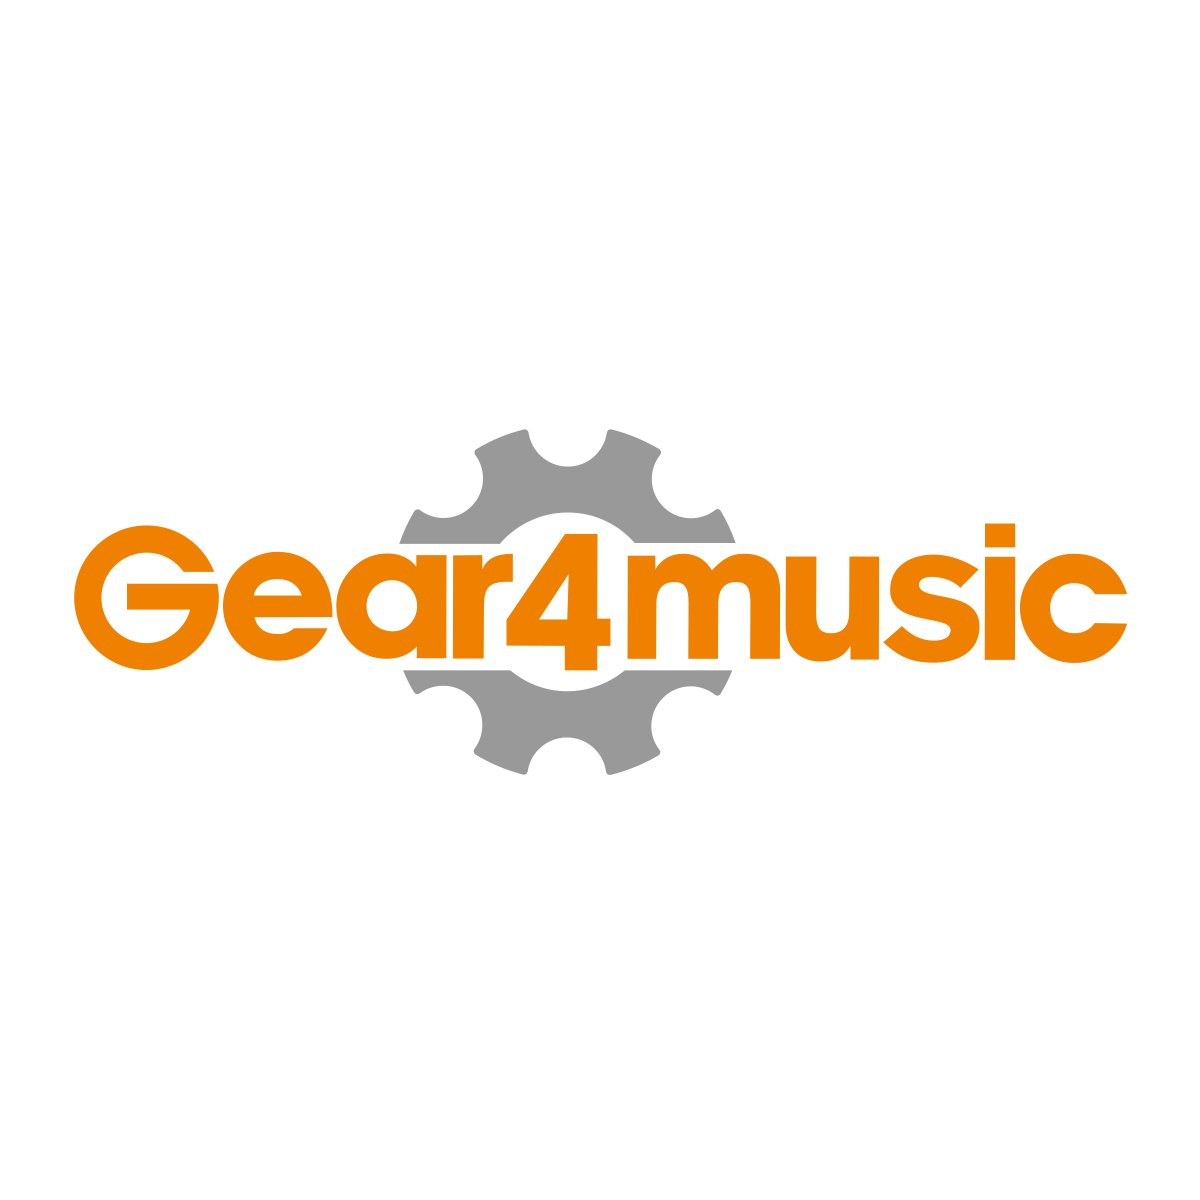 Fliscorno de Gear4music